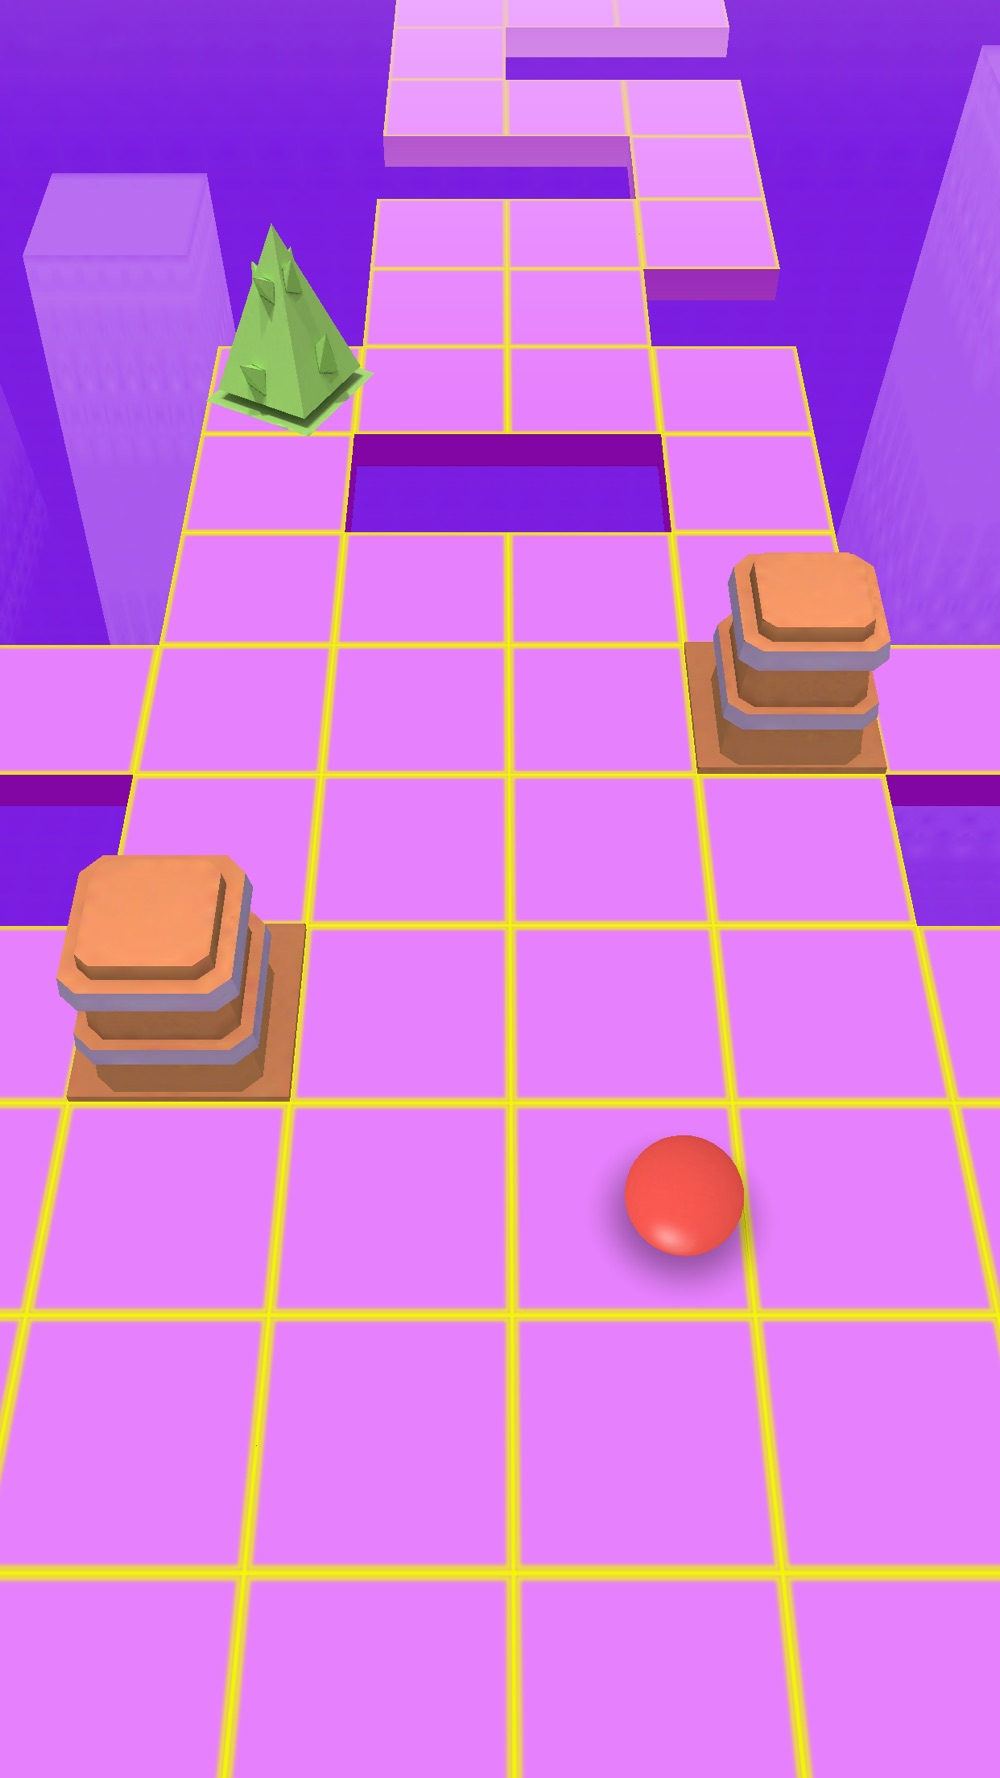 Rolling endless – Top challenge of fun free balls game cheat codes